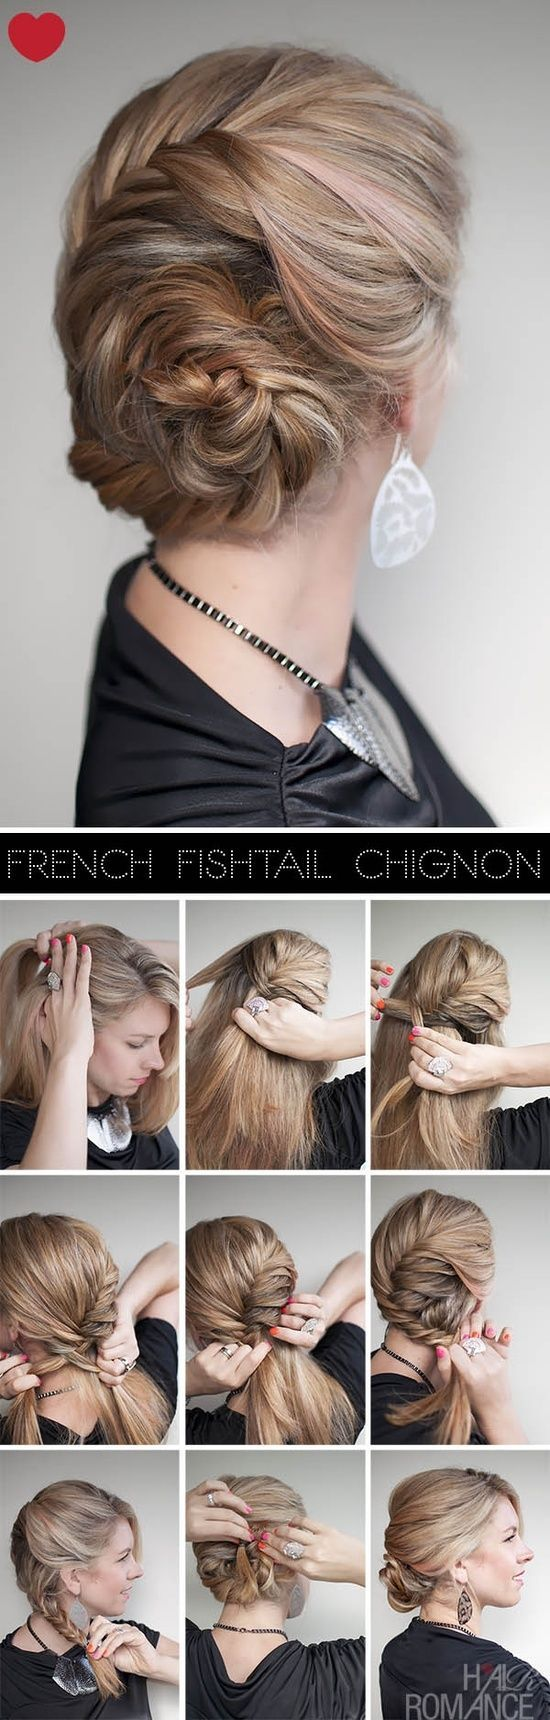 Fishtail french braid hair pinterest french braid fishtail